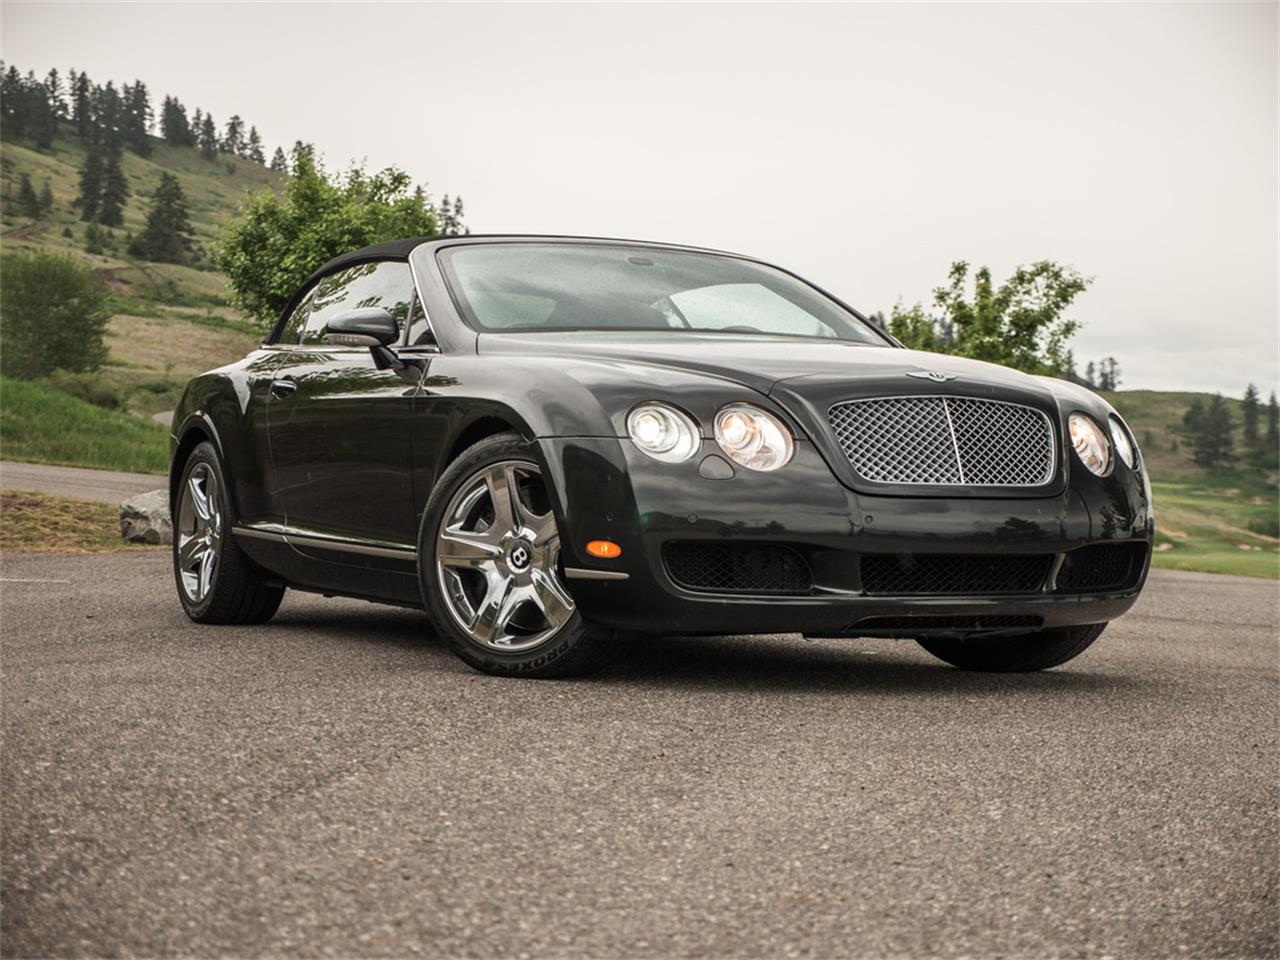 Large Picture of 2007 Bentley Continental - $61,210.00 - Q9QU